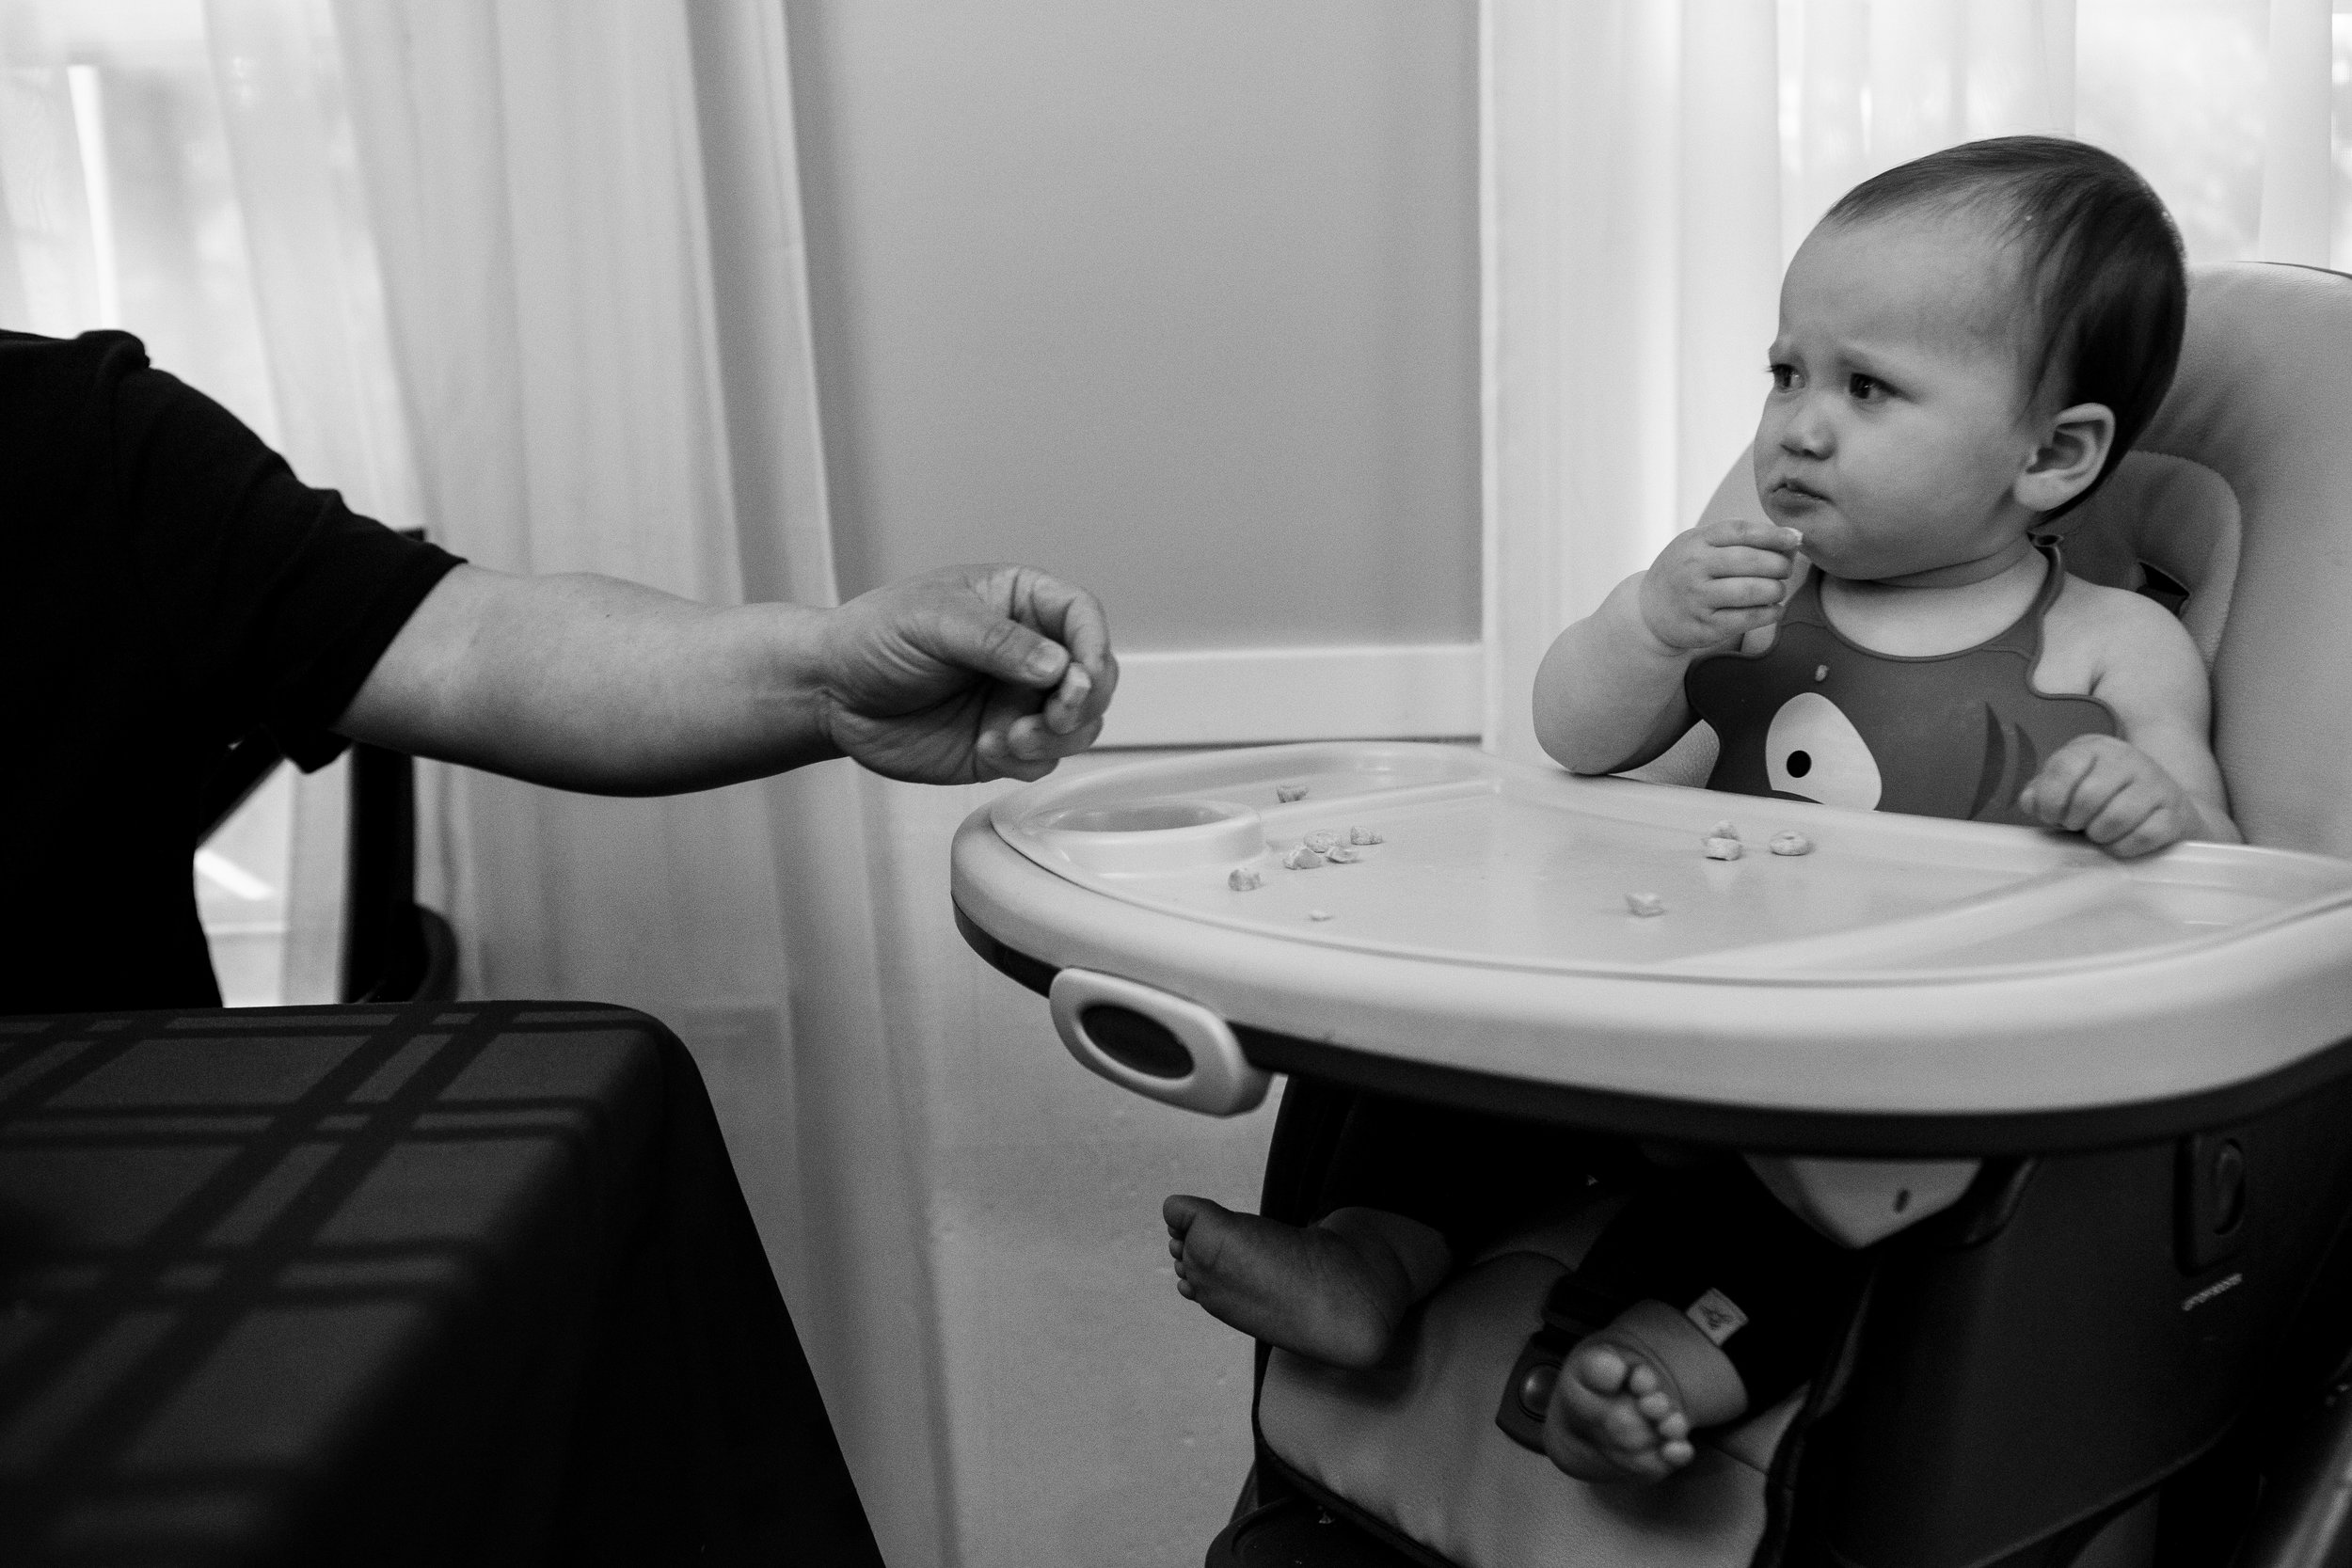 Family storytelling photography in black and white with a picky looking toddler and dad handing her food.